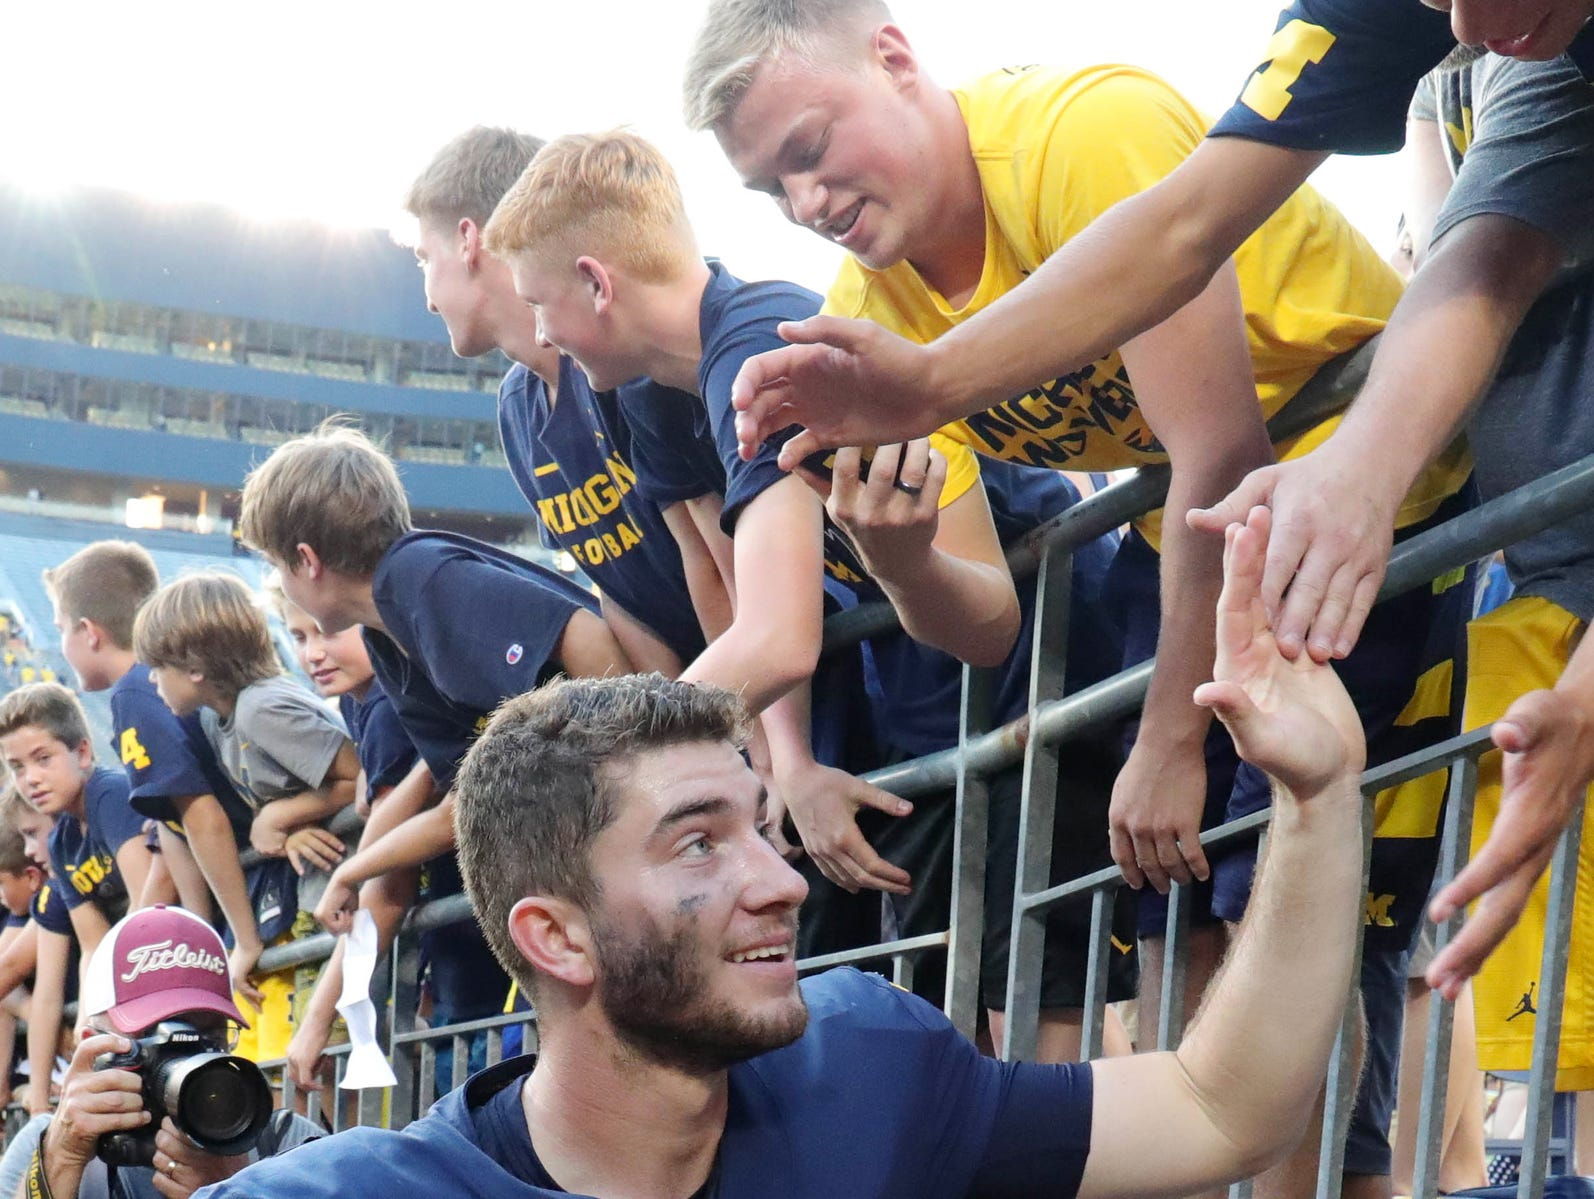 Michigan quarterback Shea Patterson leaves the field after the 45-20 win over SMU Saturday, September 15, 2018 at Michigan Stadium, in Ann Arbor, Mich.